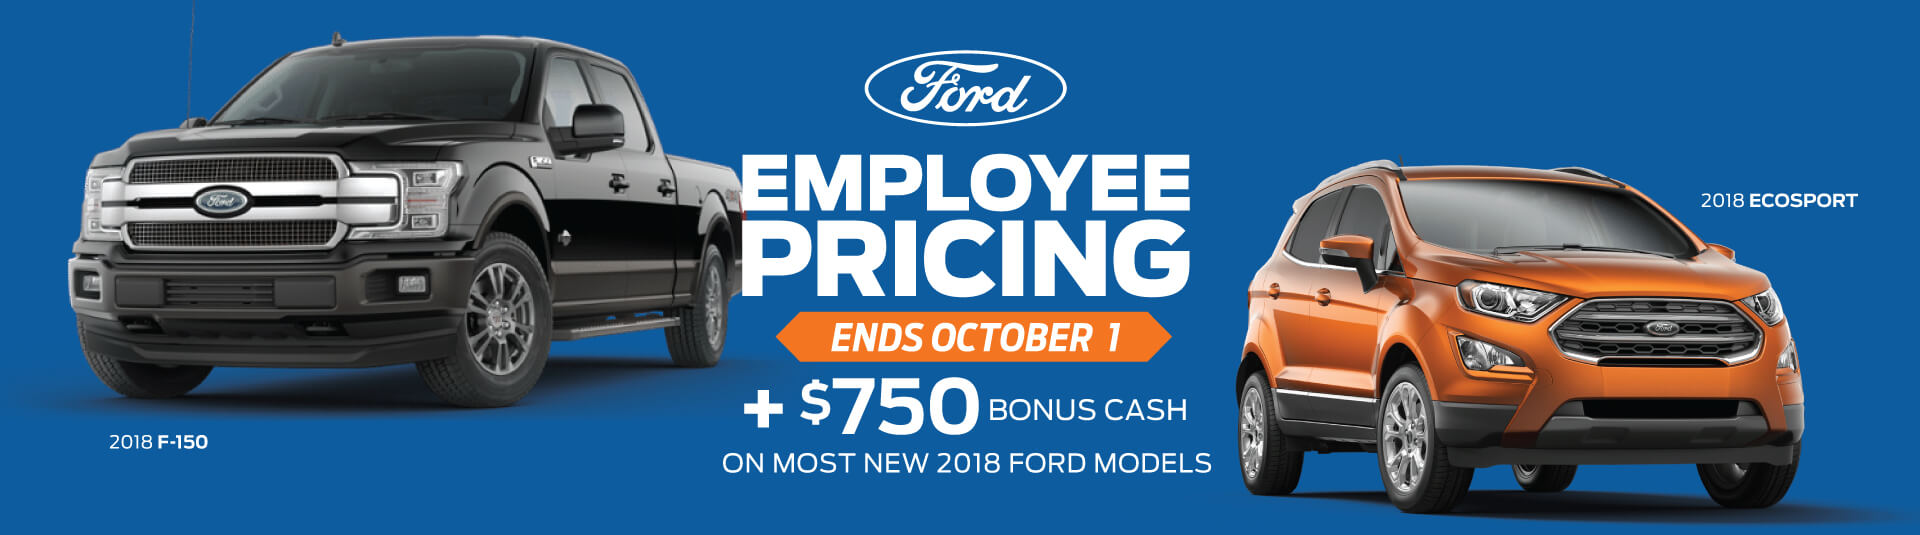 Ford Employee Pricing Offers